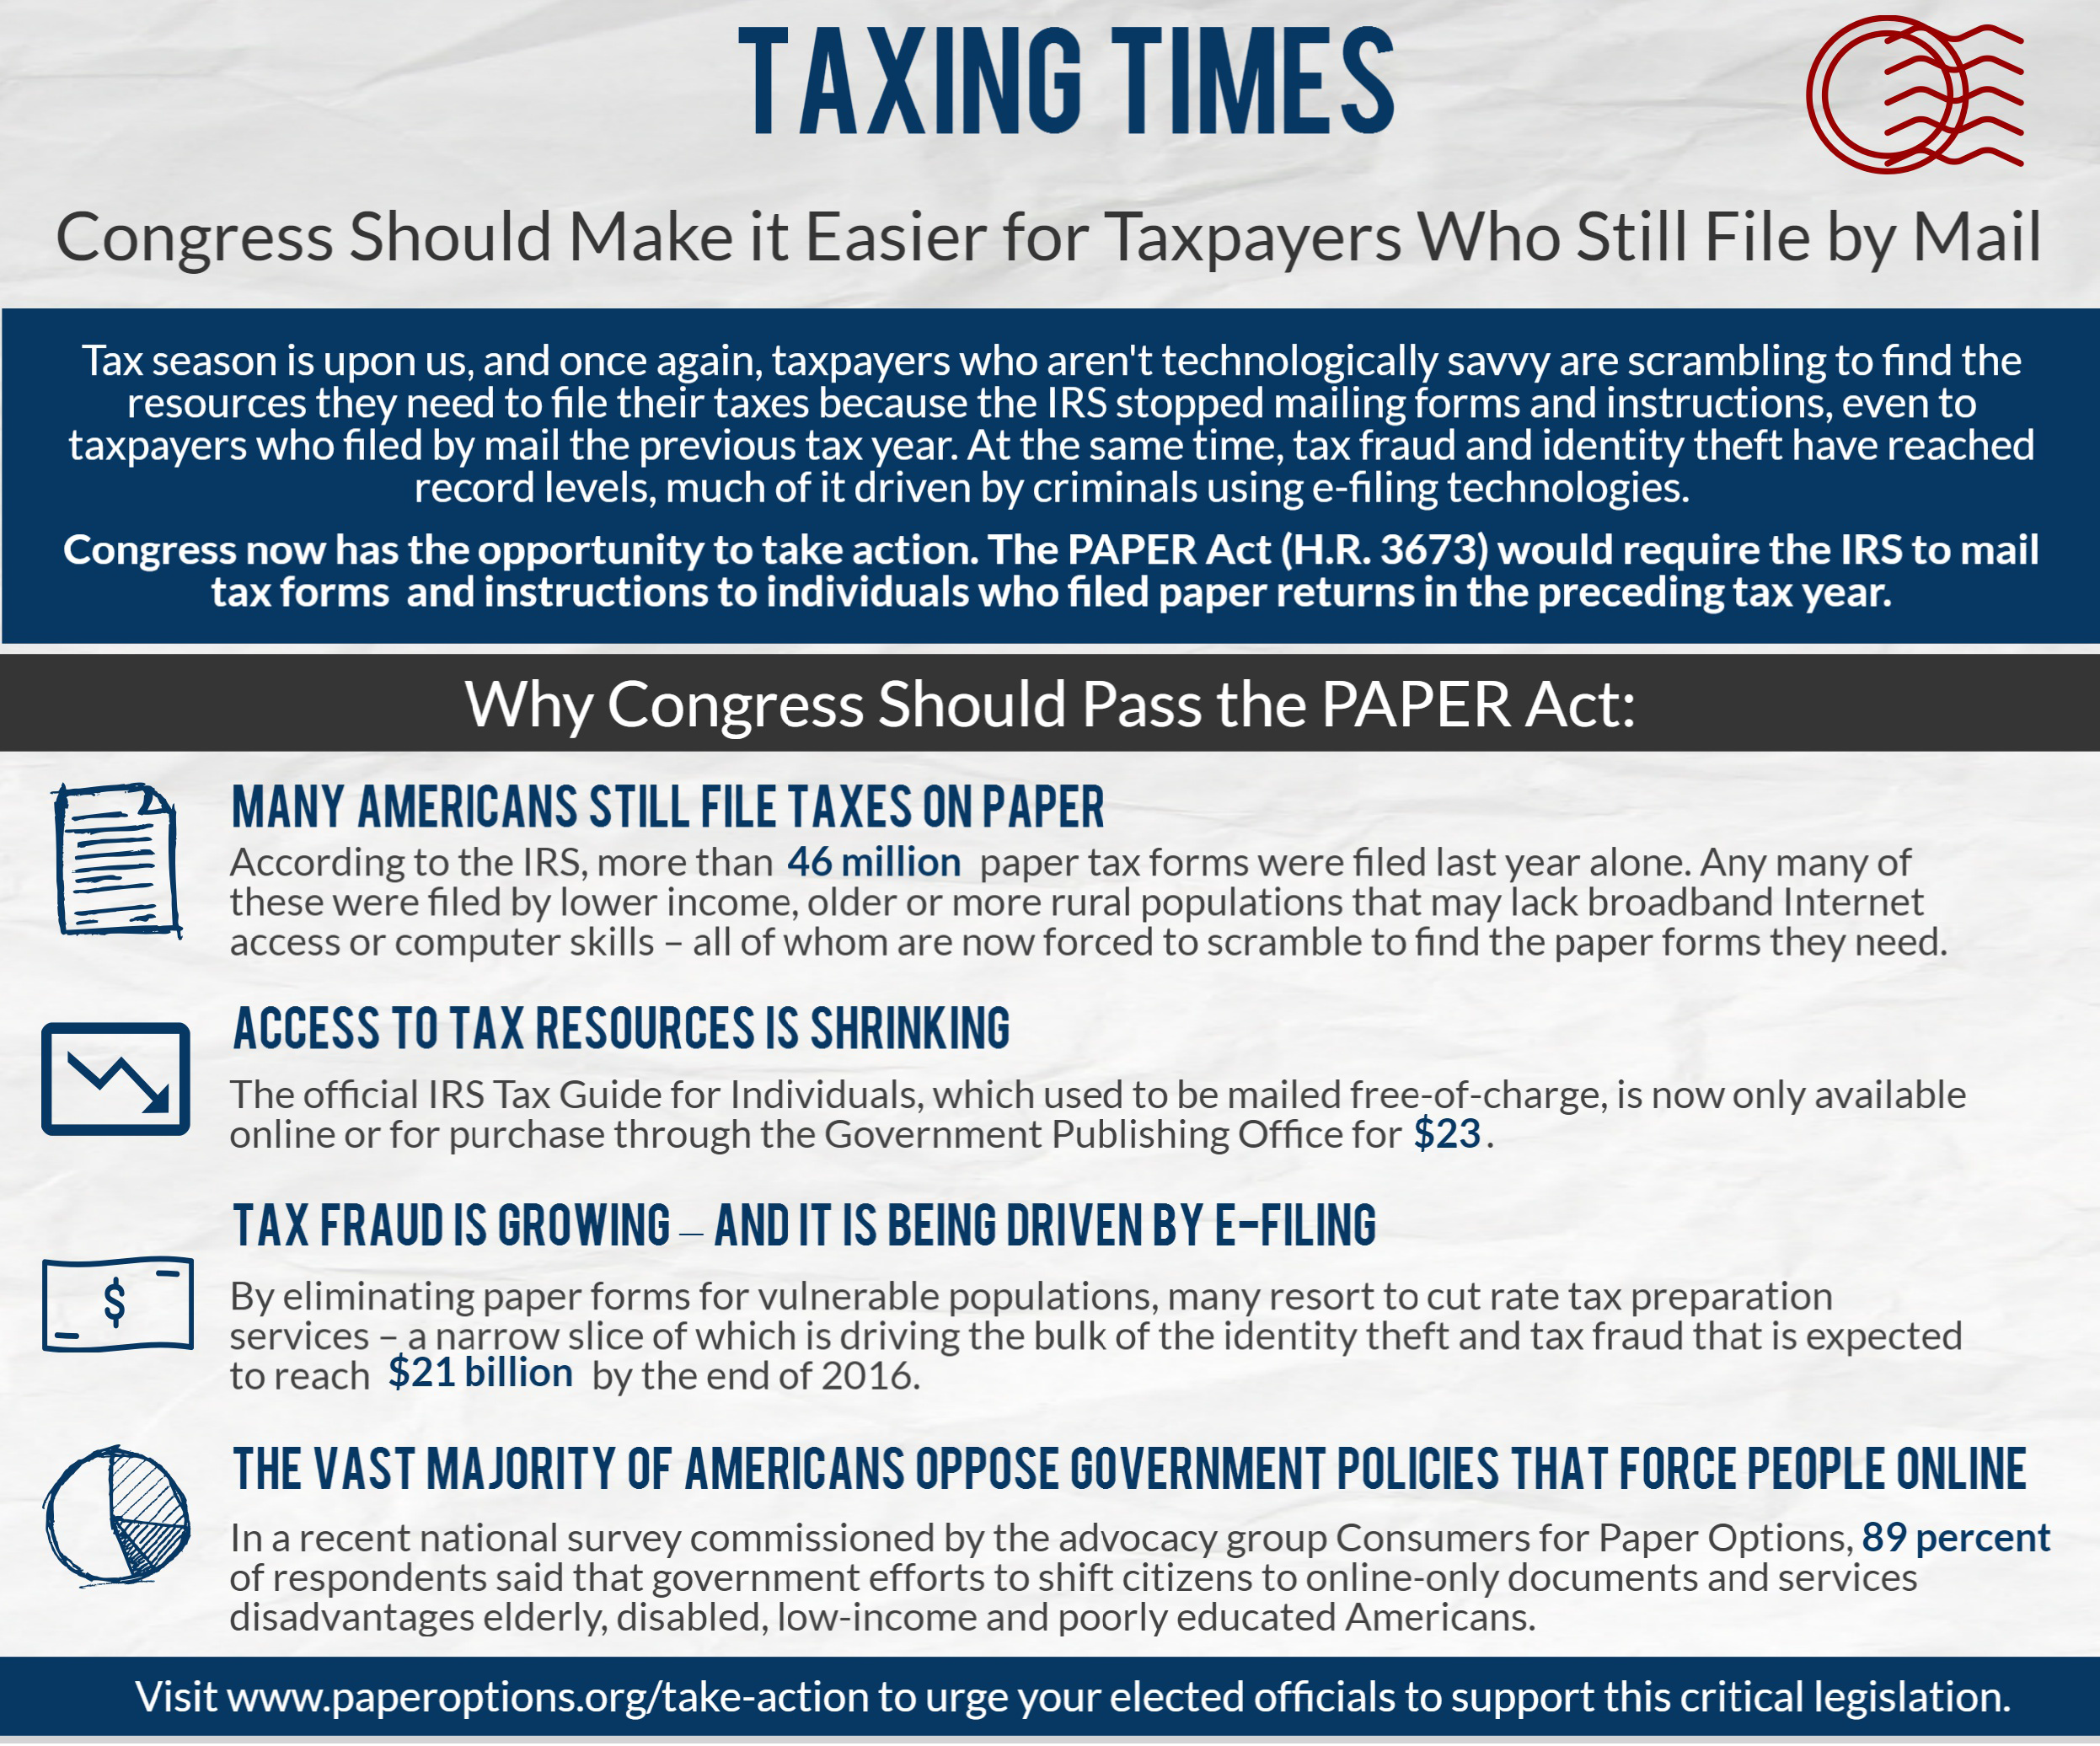 Congress Should Make It Easier for Taxpayers Who Still File by Mail ...